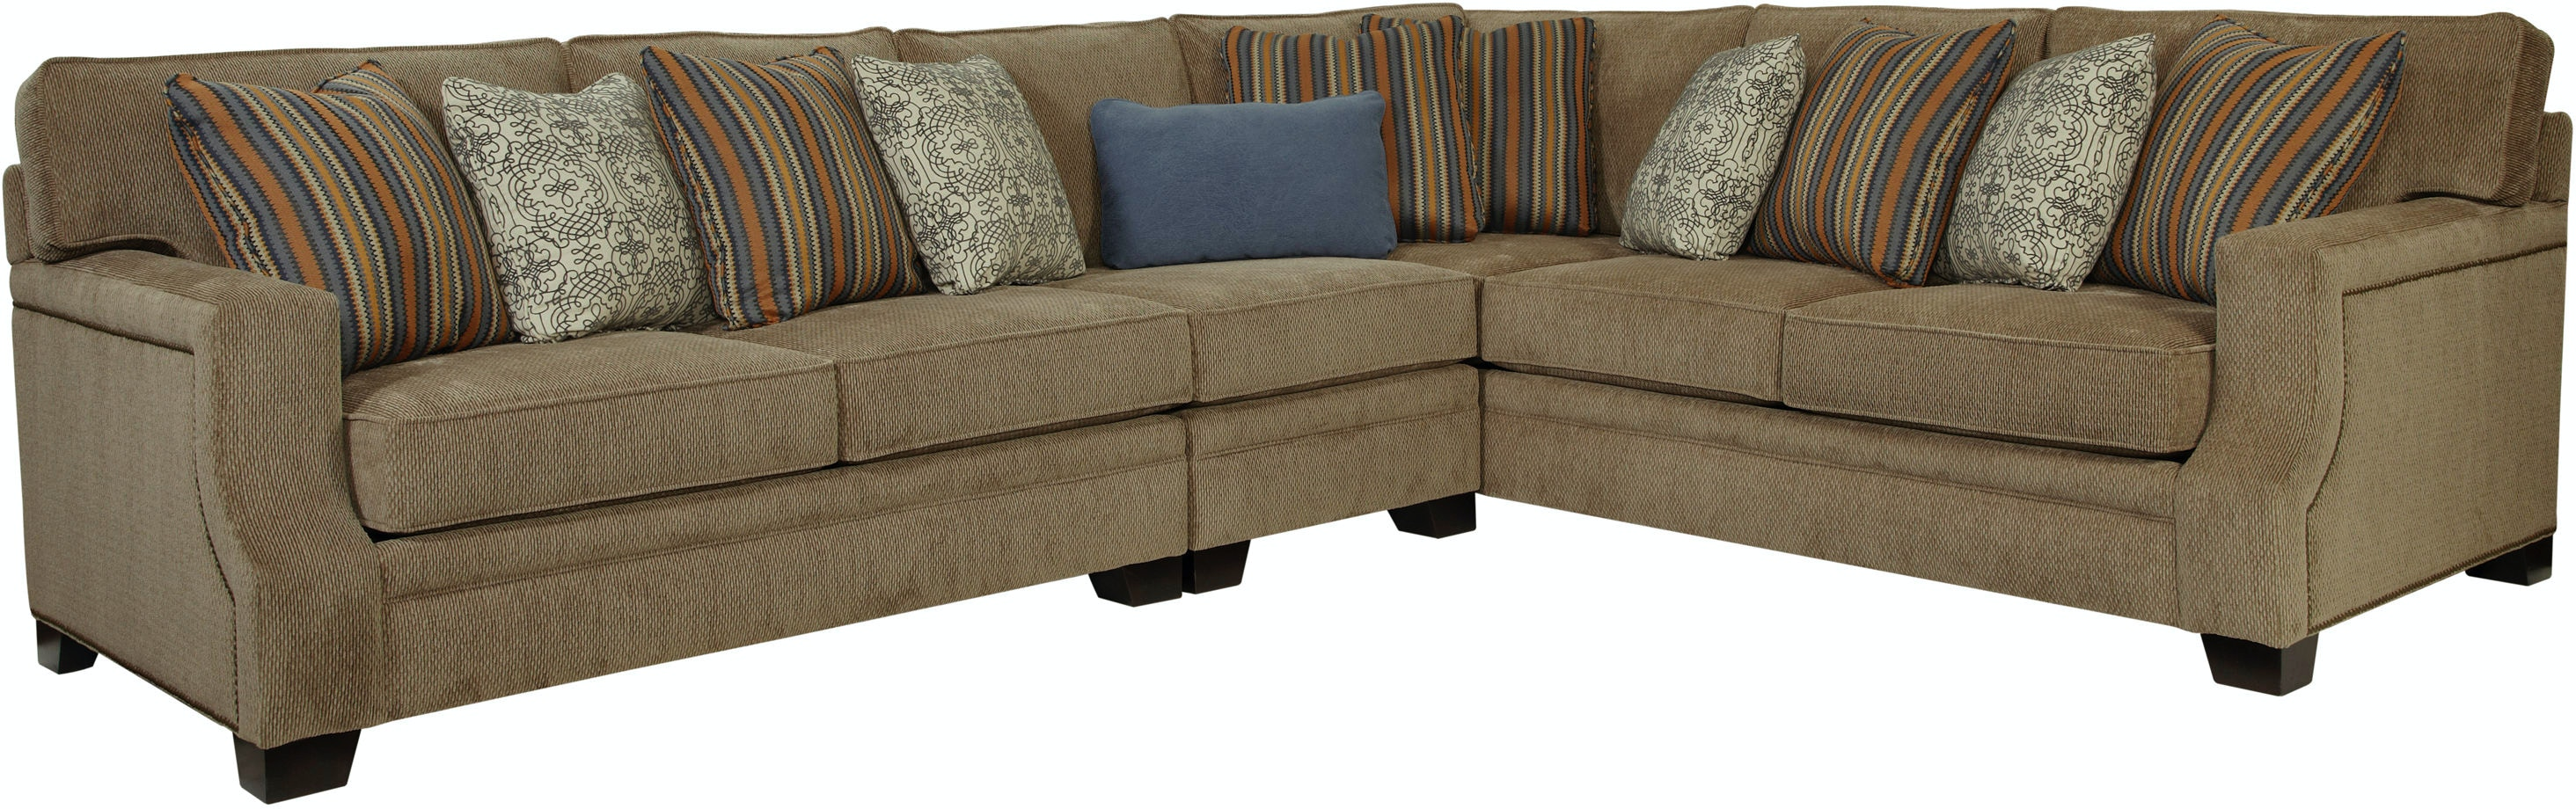 Microfiber Dining Room Chairs Broyhill Living Room 3671 Sectional Gibson Furniture